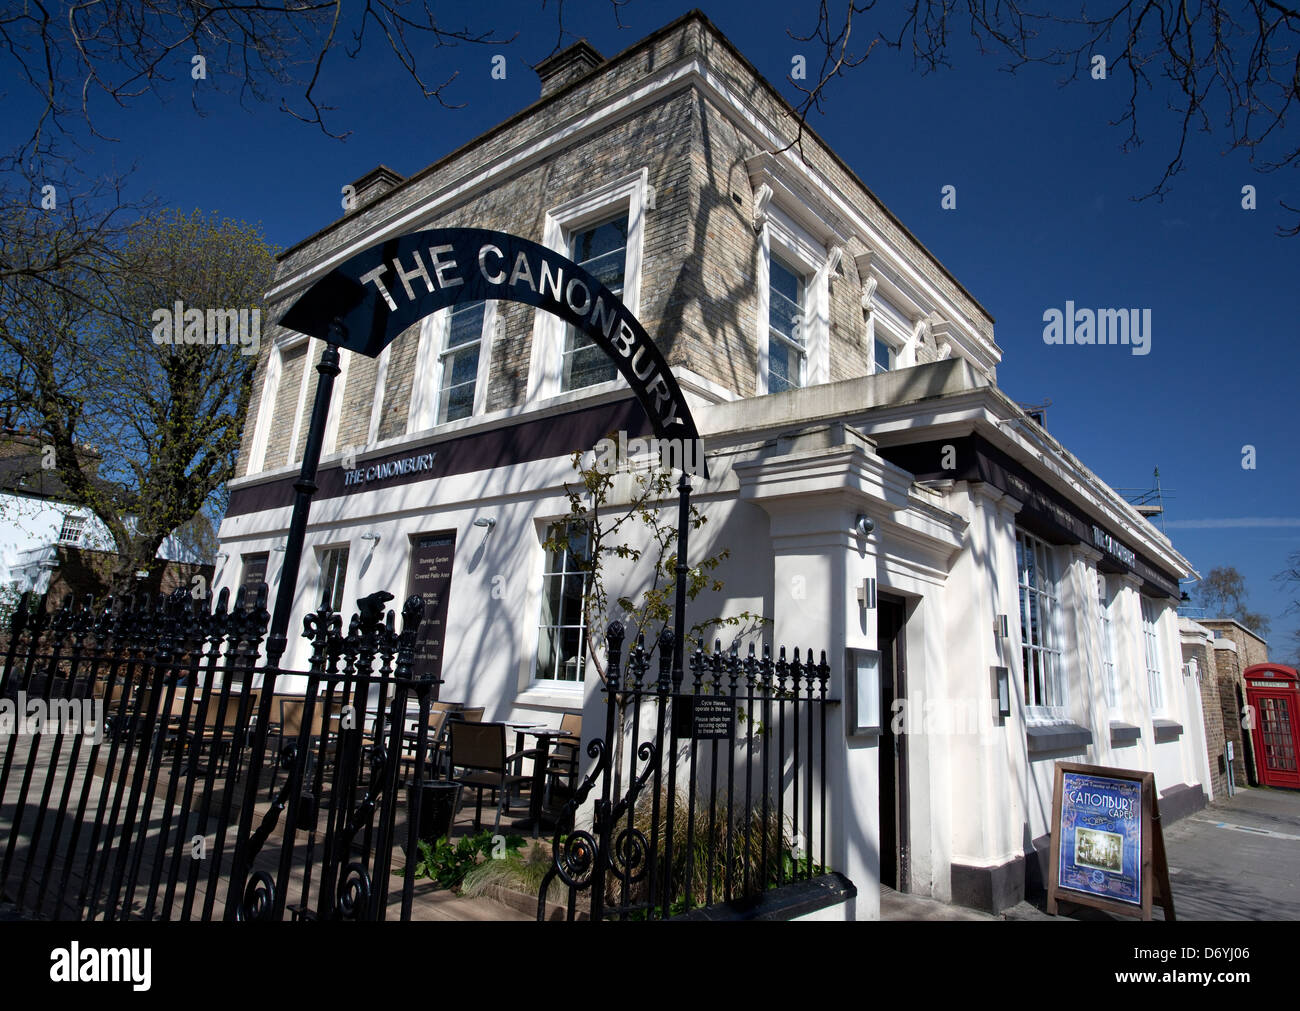 The Canonbury bar and restaurant in Islington, London - Stock Image